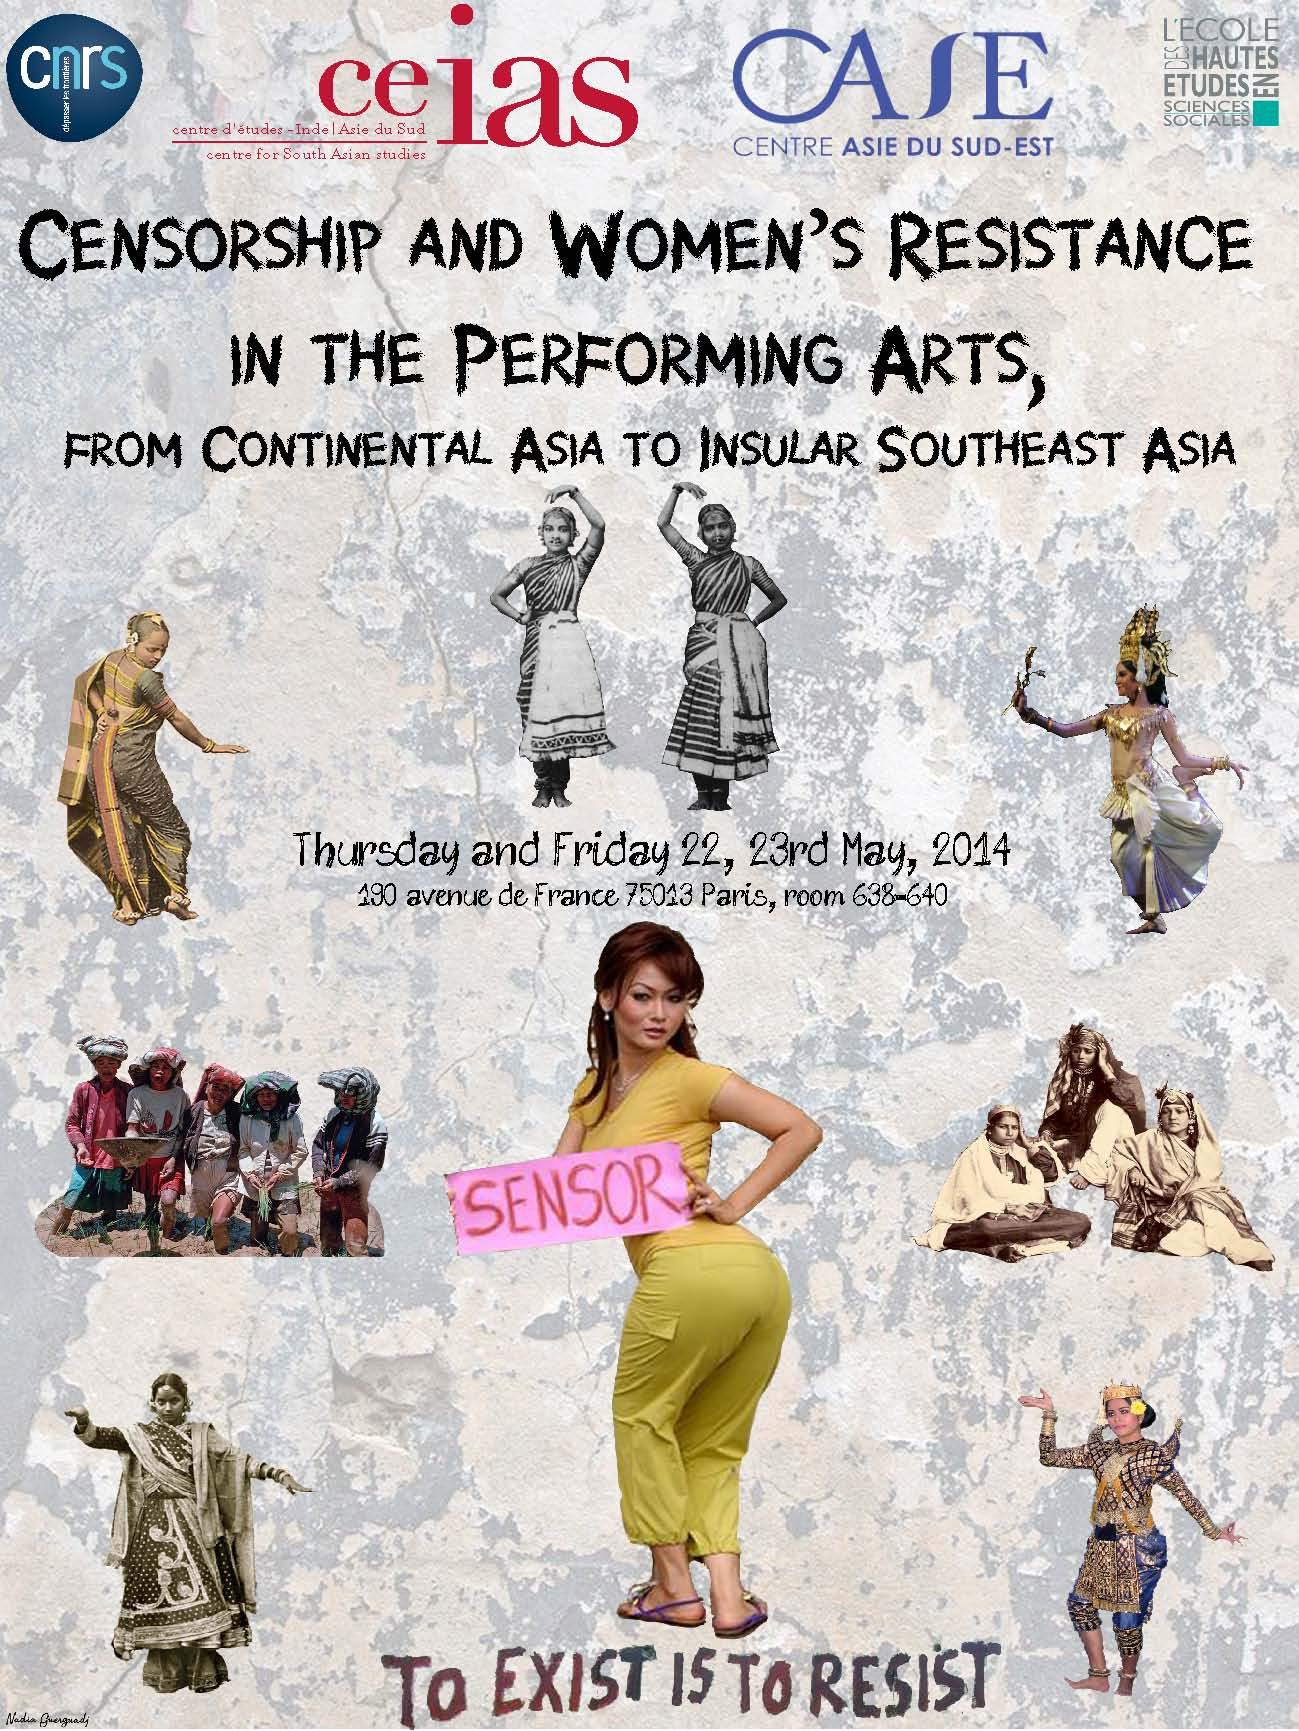 Censorship and Women's Resistance in the Performing Arts, from Continental Asia to Insular Southeast Asia